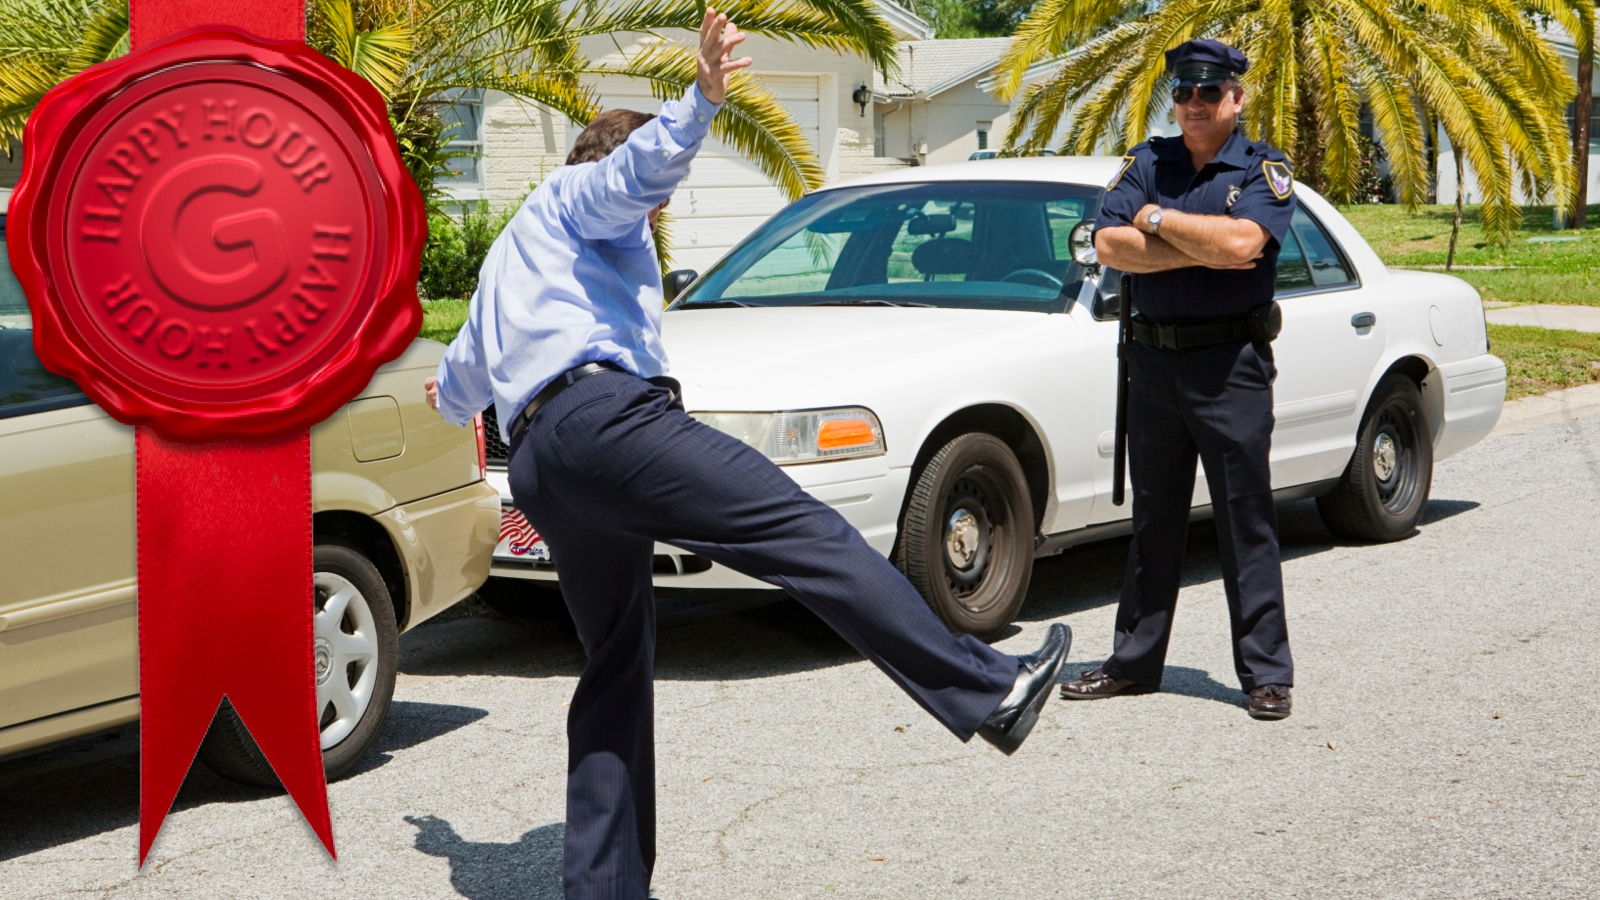 Click here to read The Secrets of Field Sobriety Tests